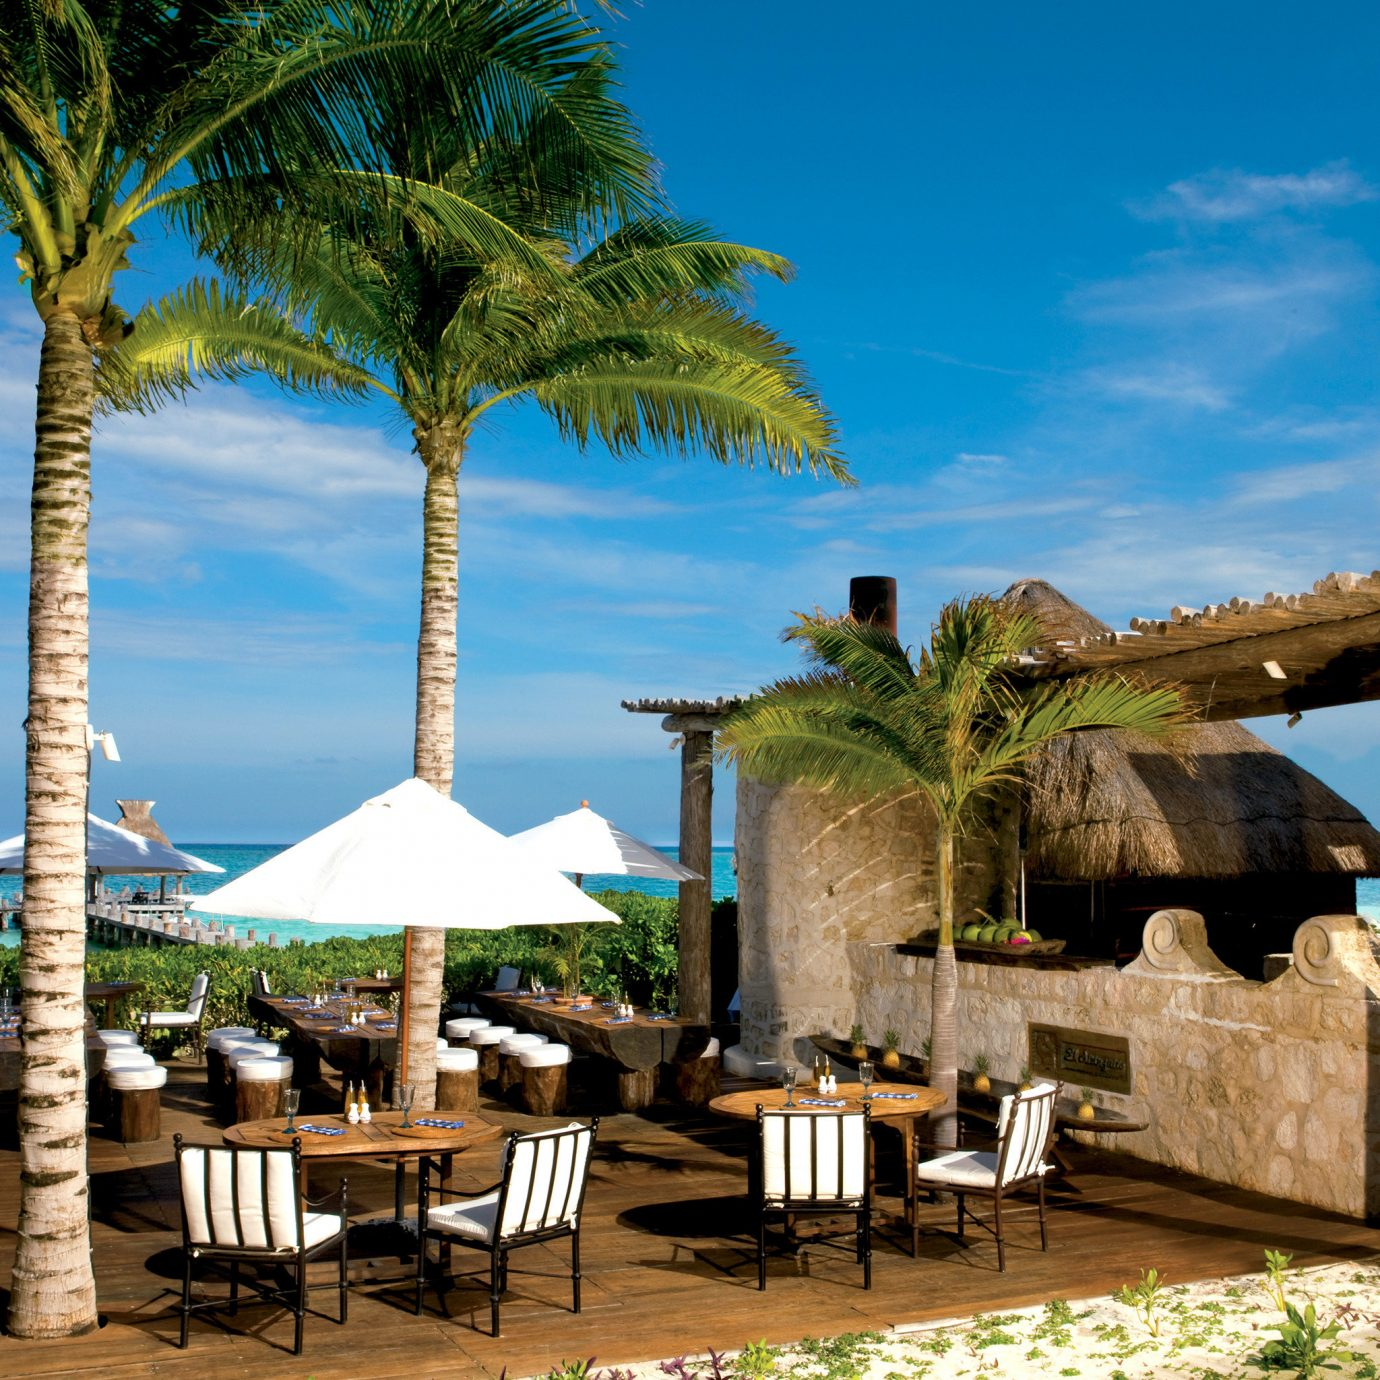 Beach Beachfront Deck Dining Hotels Lounge tree chair property Resort hacienda arecales wooden Villa caribbean plant